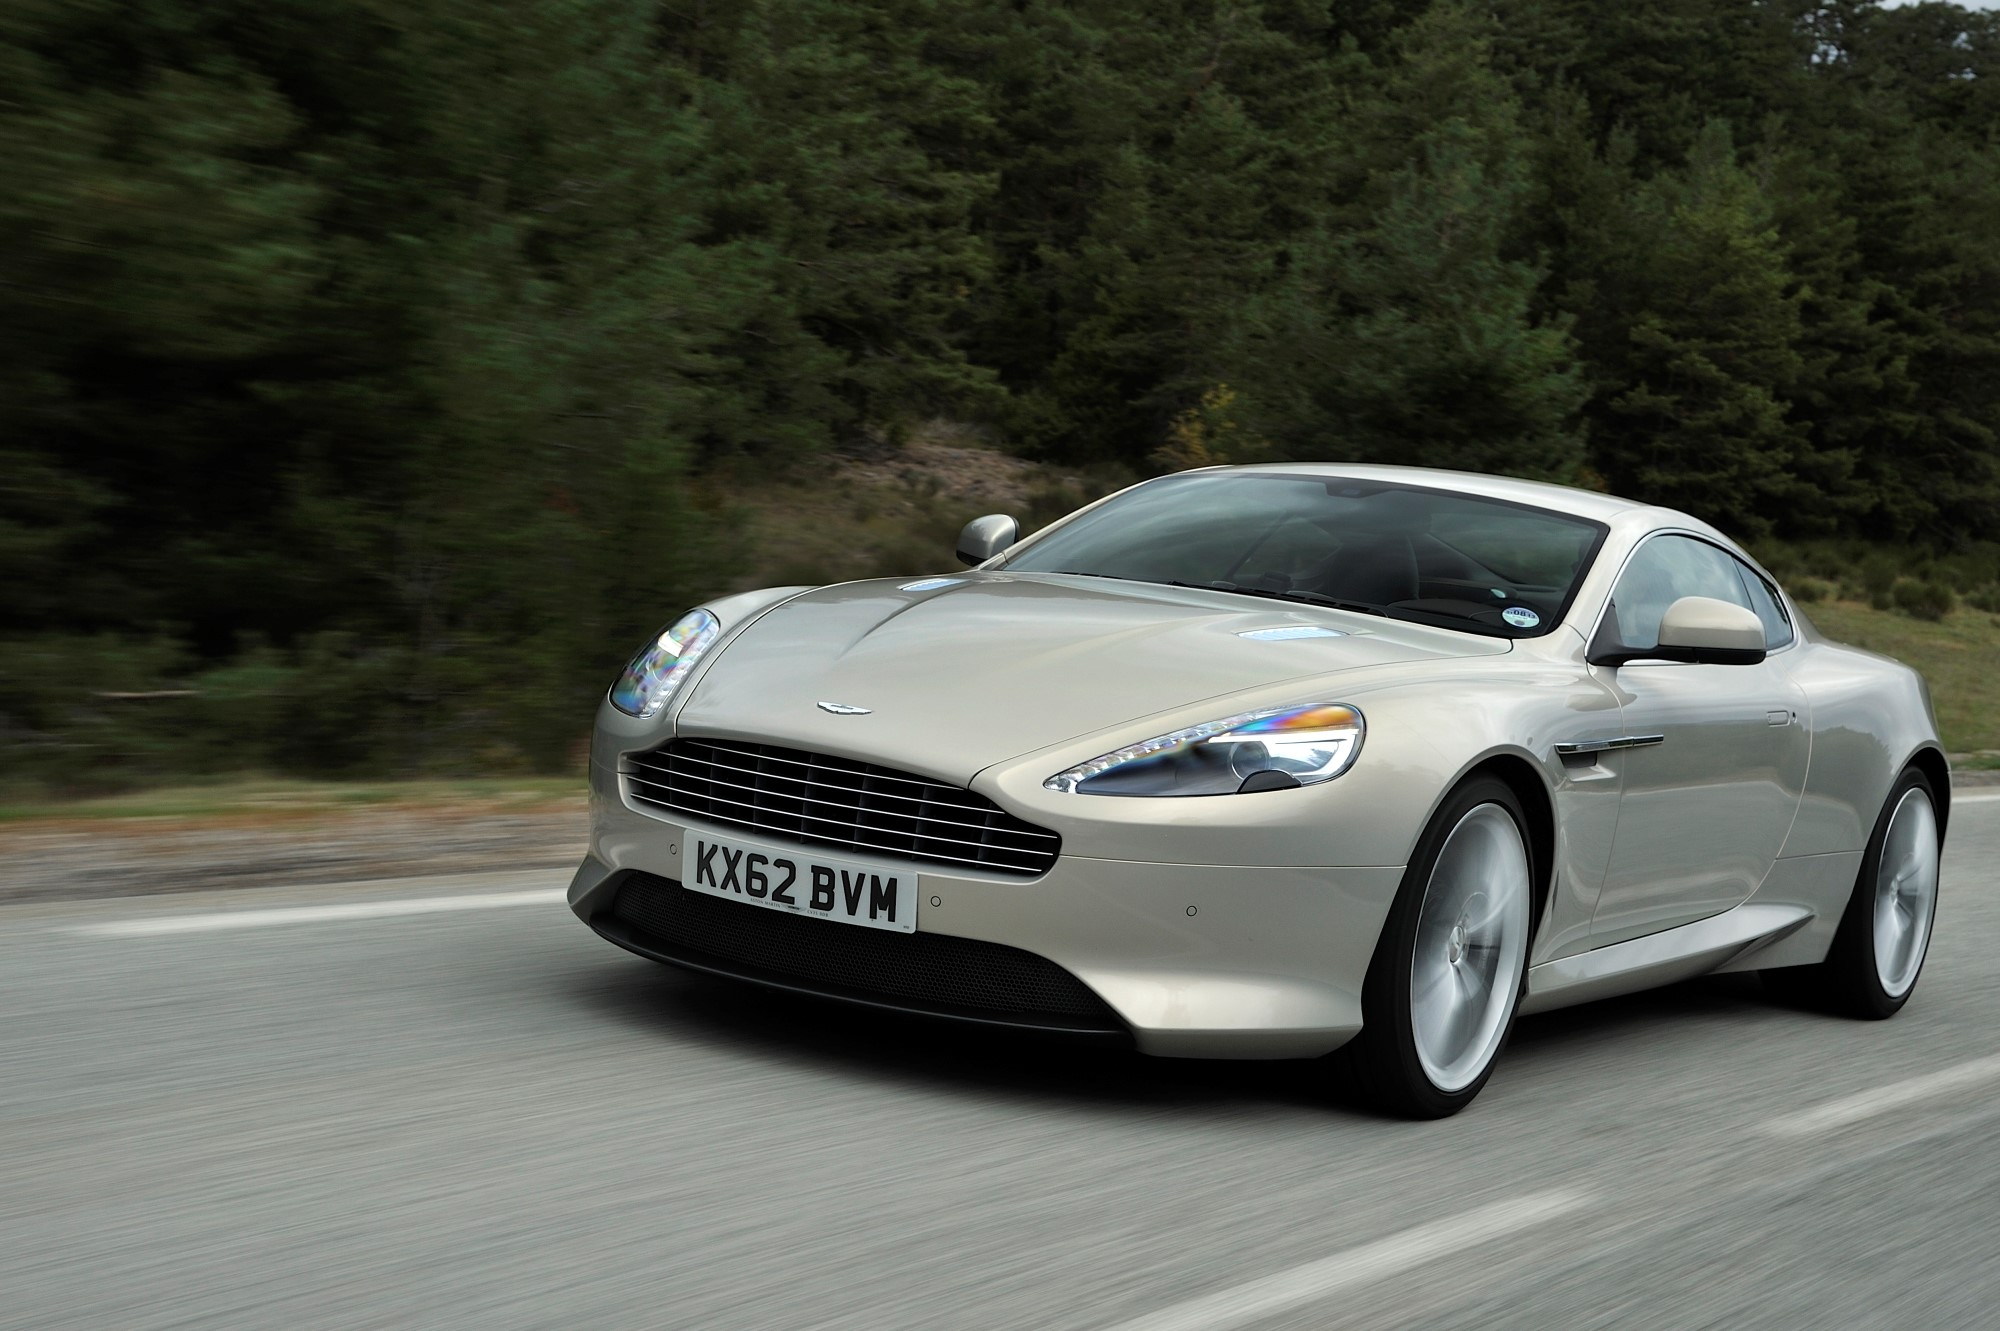 2014 Aston Martin Db9 Review Ratings Specs Prices And